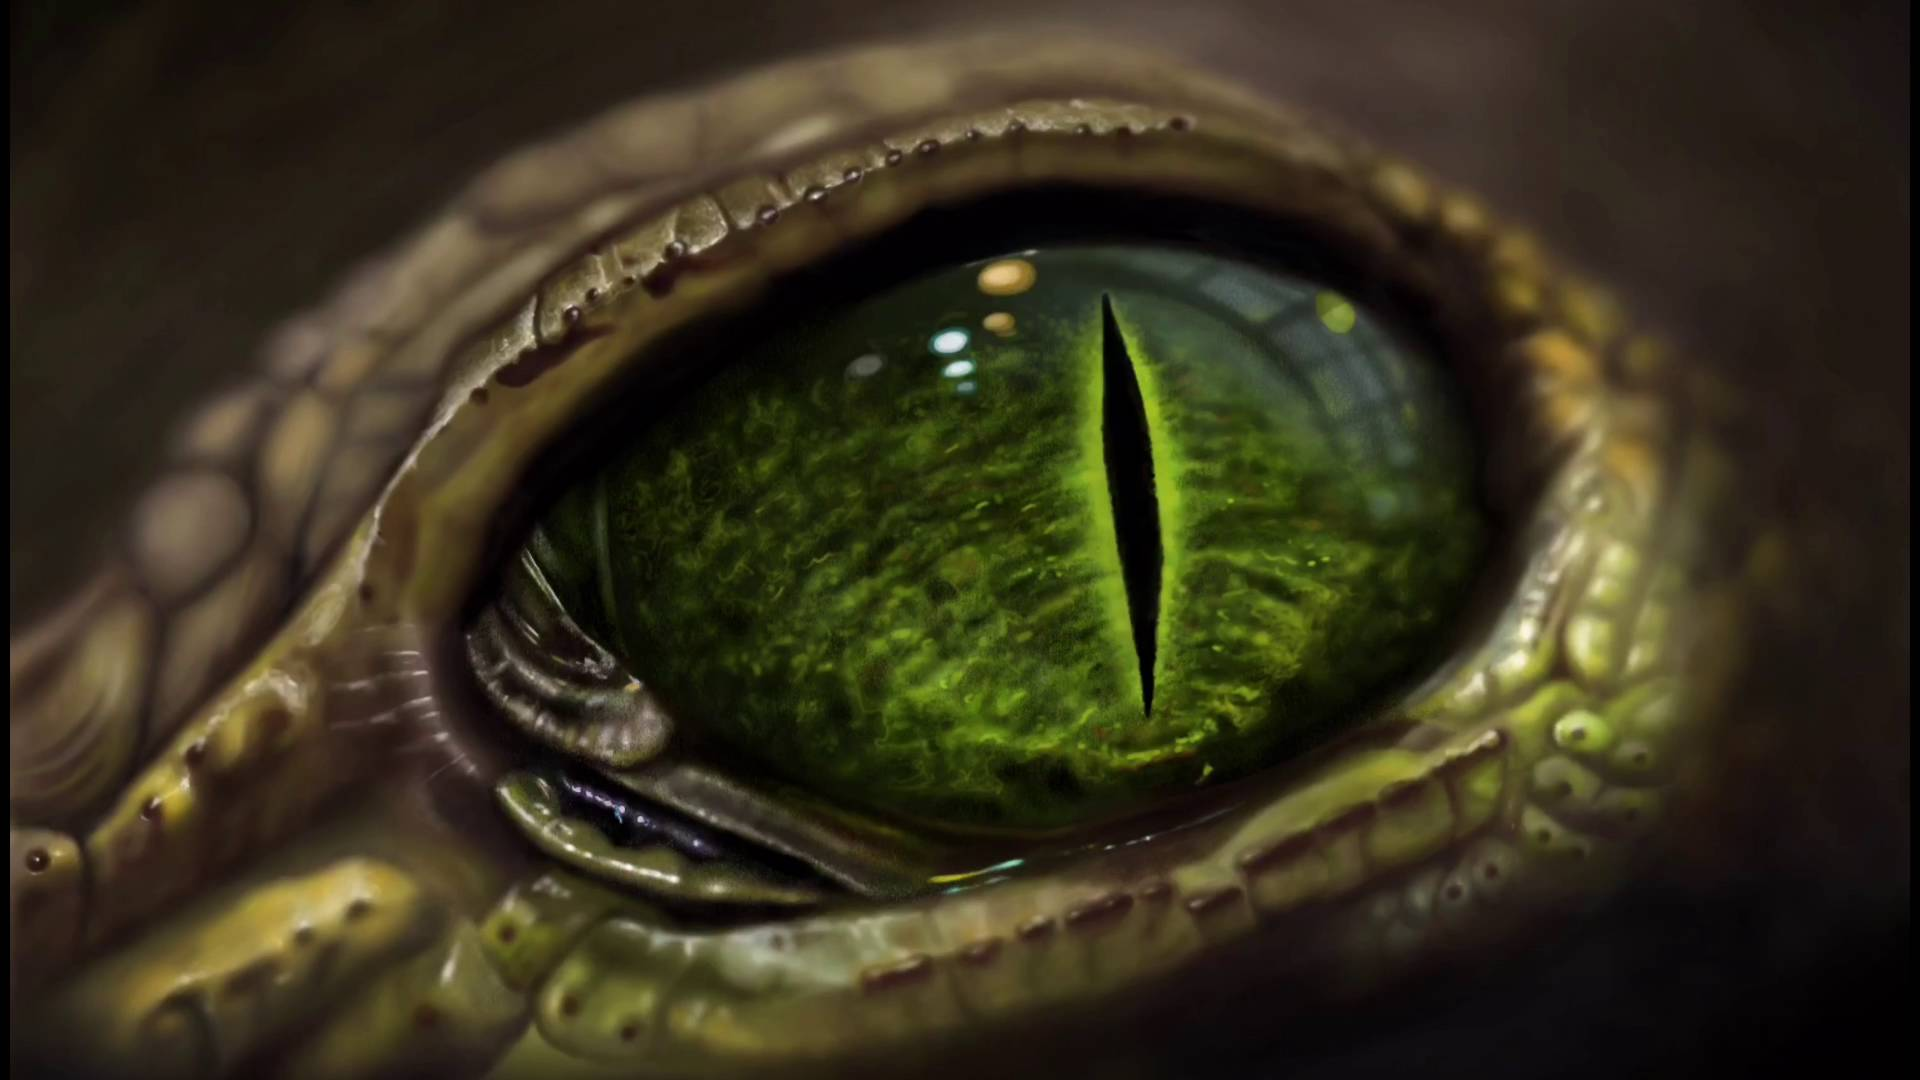 Apple Pencil Painting On IPad Pro Of Lizard Eye By Noel Campion ...